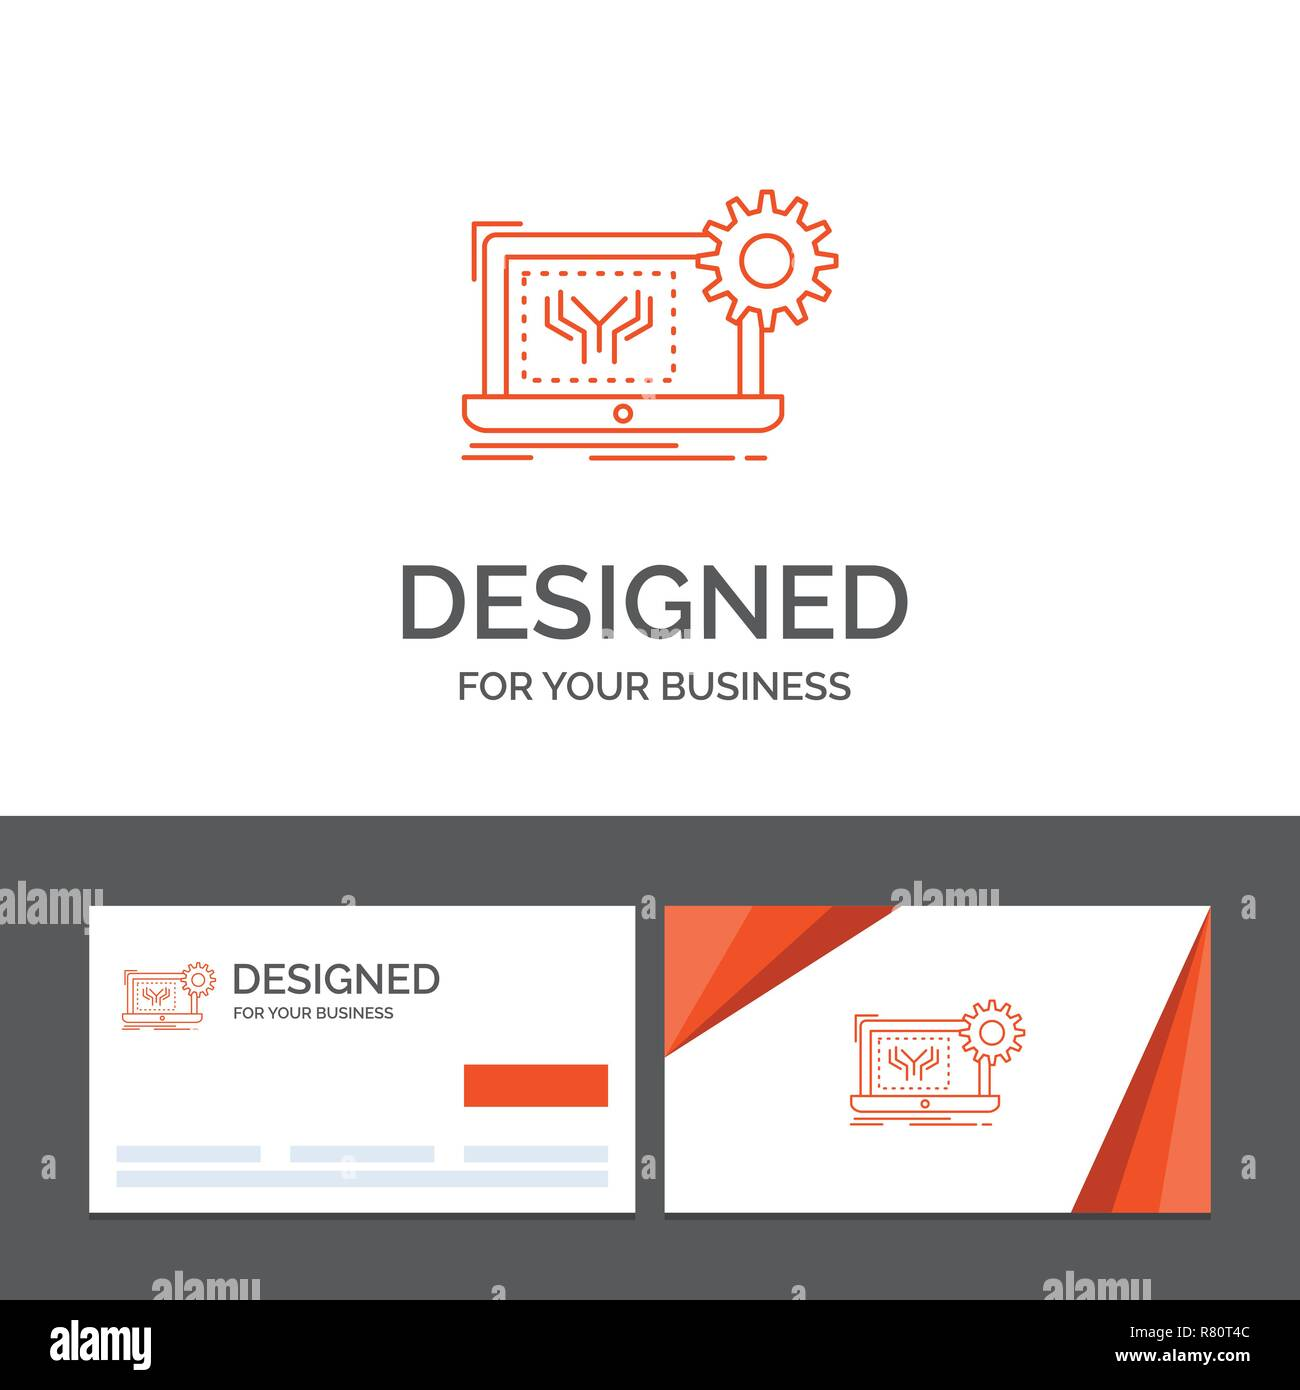 Business logo template for Blueprint, circuit, electronics, engineering, hardware. Orange Visiting Cards with Brand logo template - Stock Image